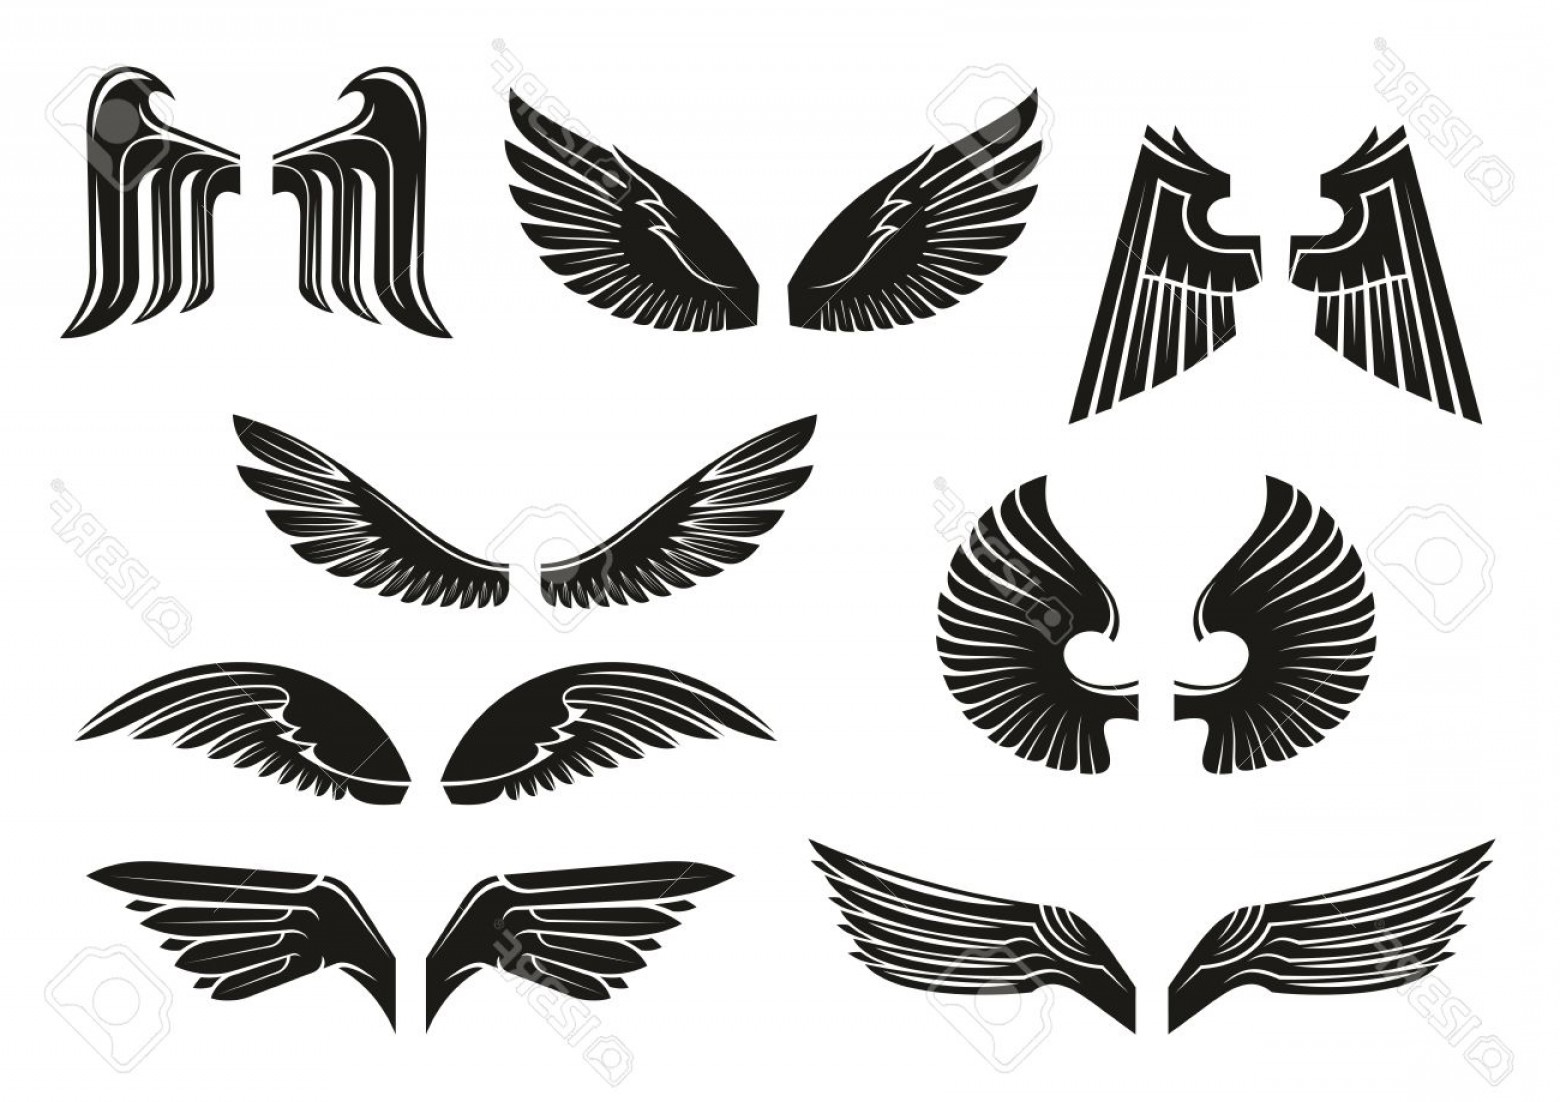 Angel Wings Tattoo Tribal Vector: Photostock Vector Black Heraldic Wings Set In Tribal Style For Tattoo And Book Heraldry Or Religious Design Isolated O